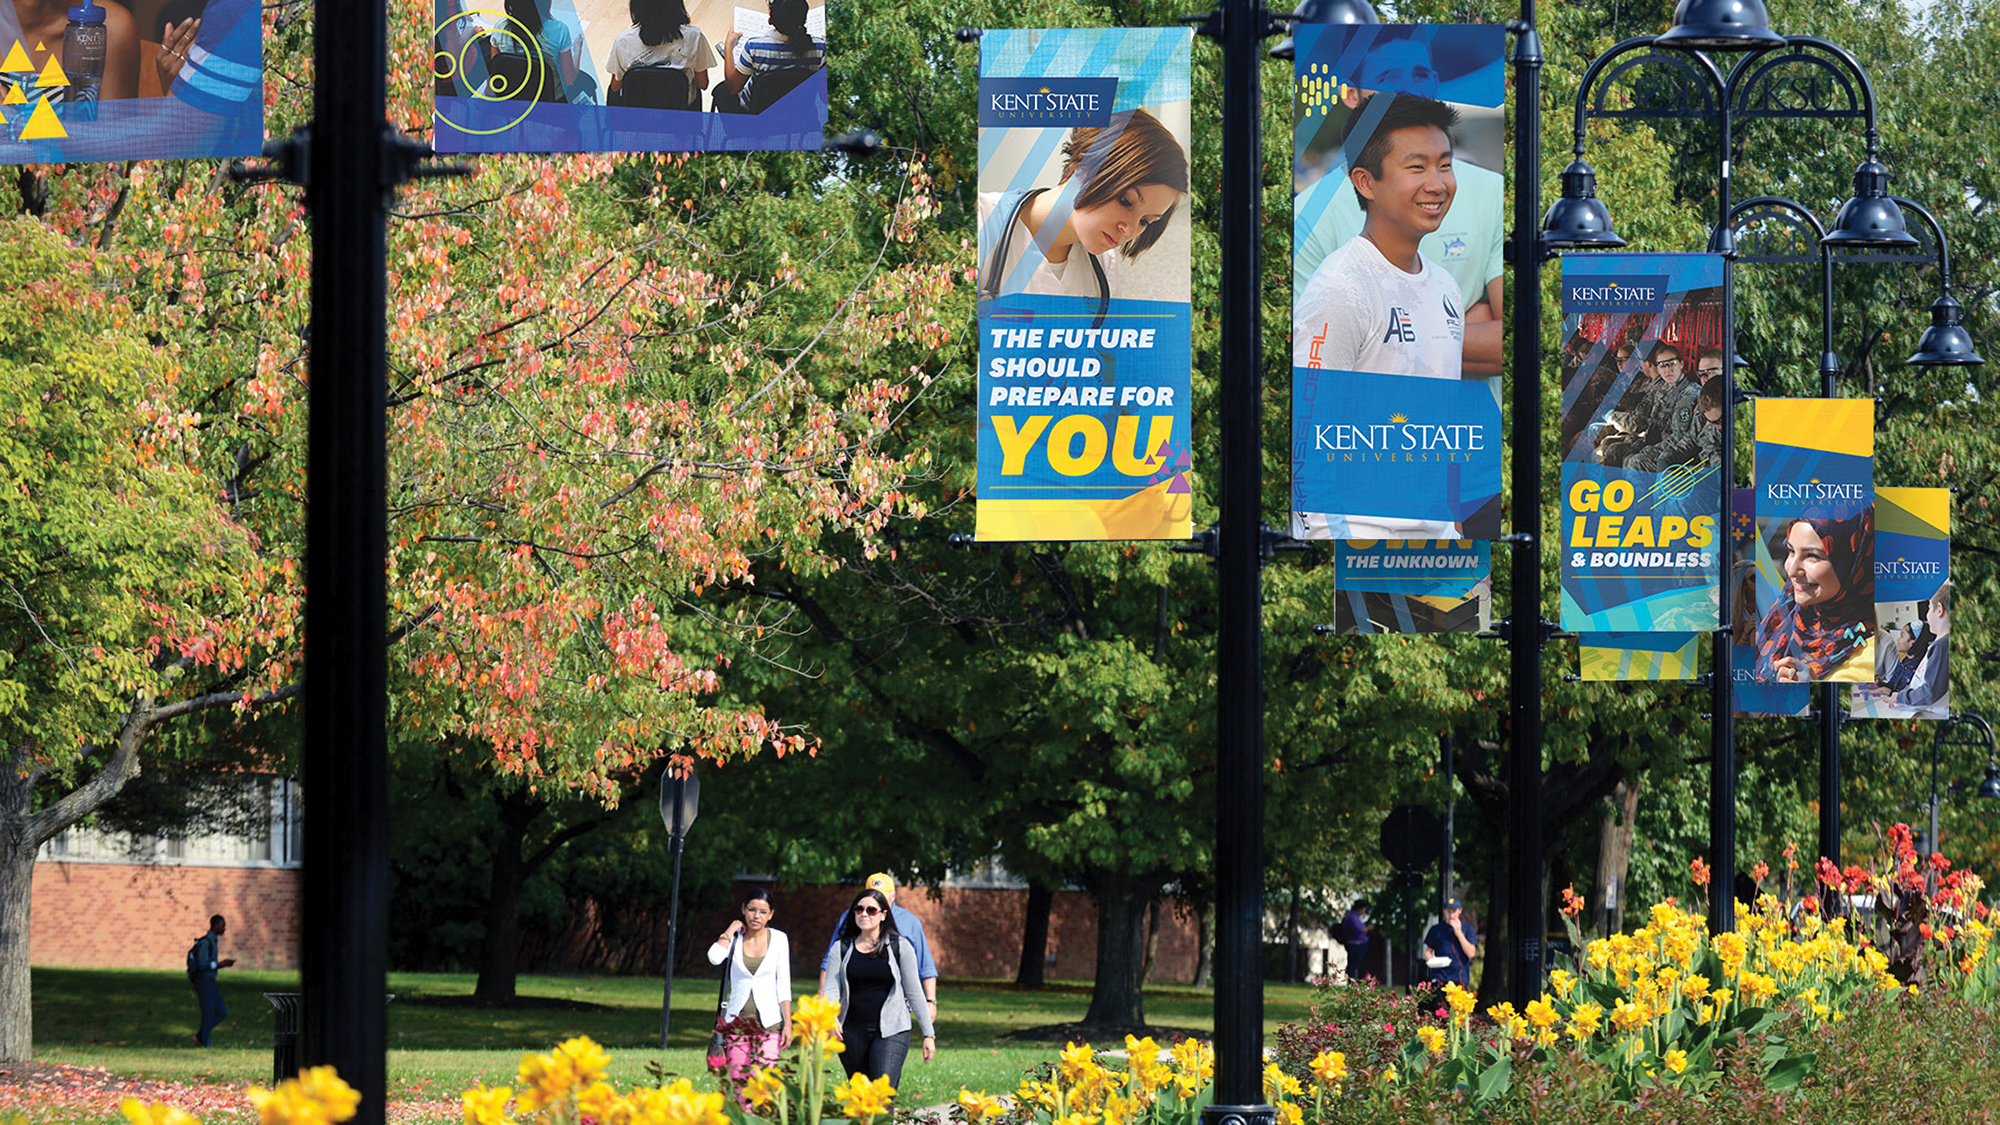 New banners on campus